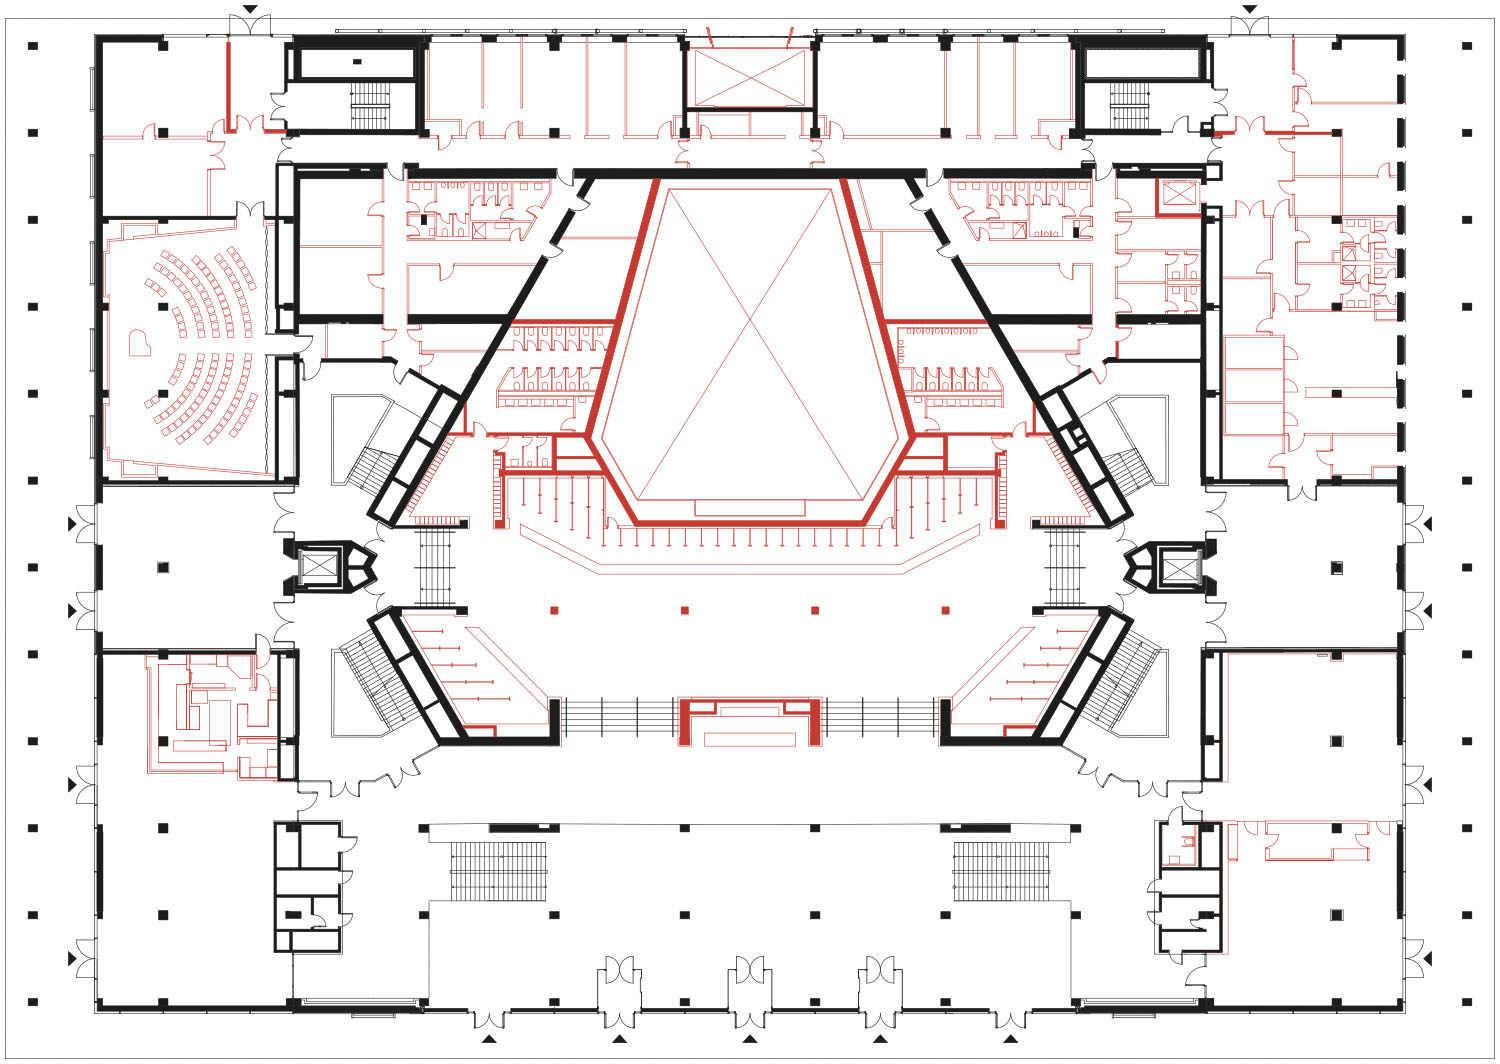 Floor plan level 0 gmp von Gerkan, Marg and Partners Architects}